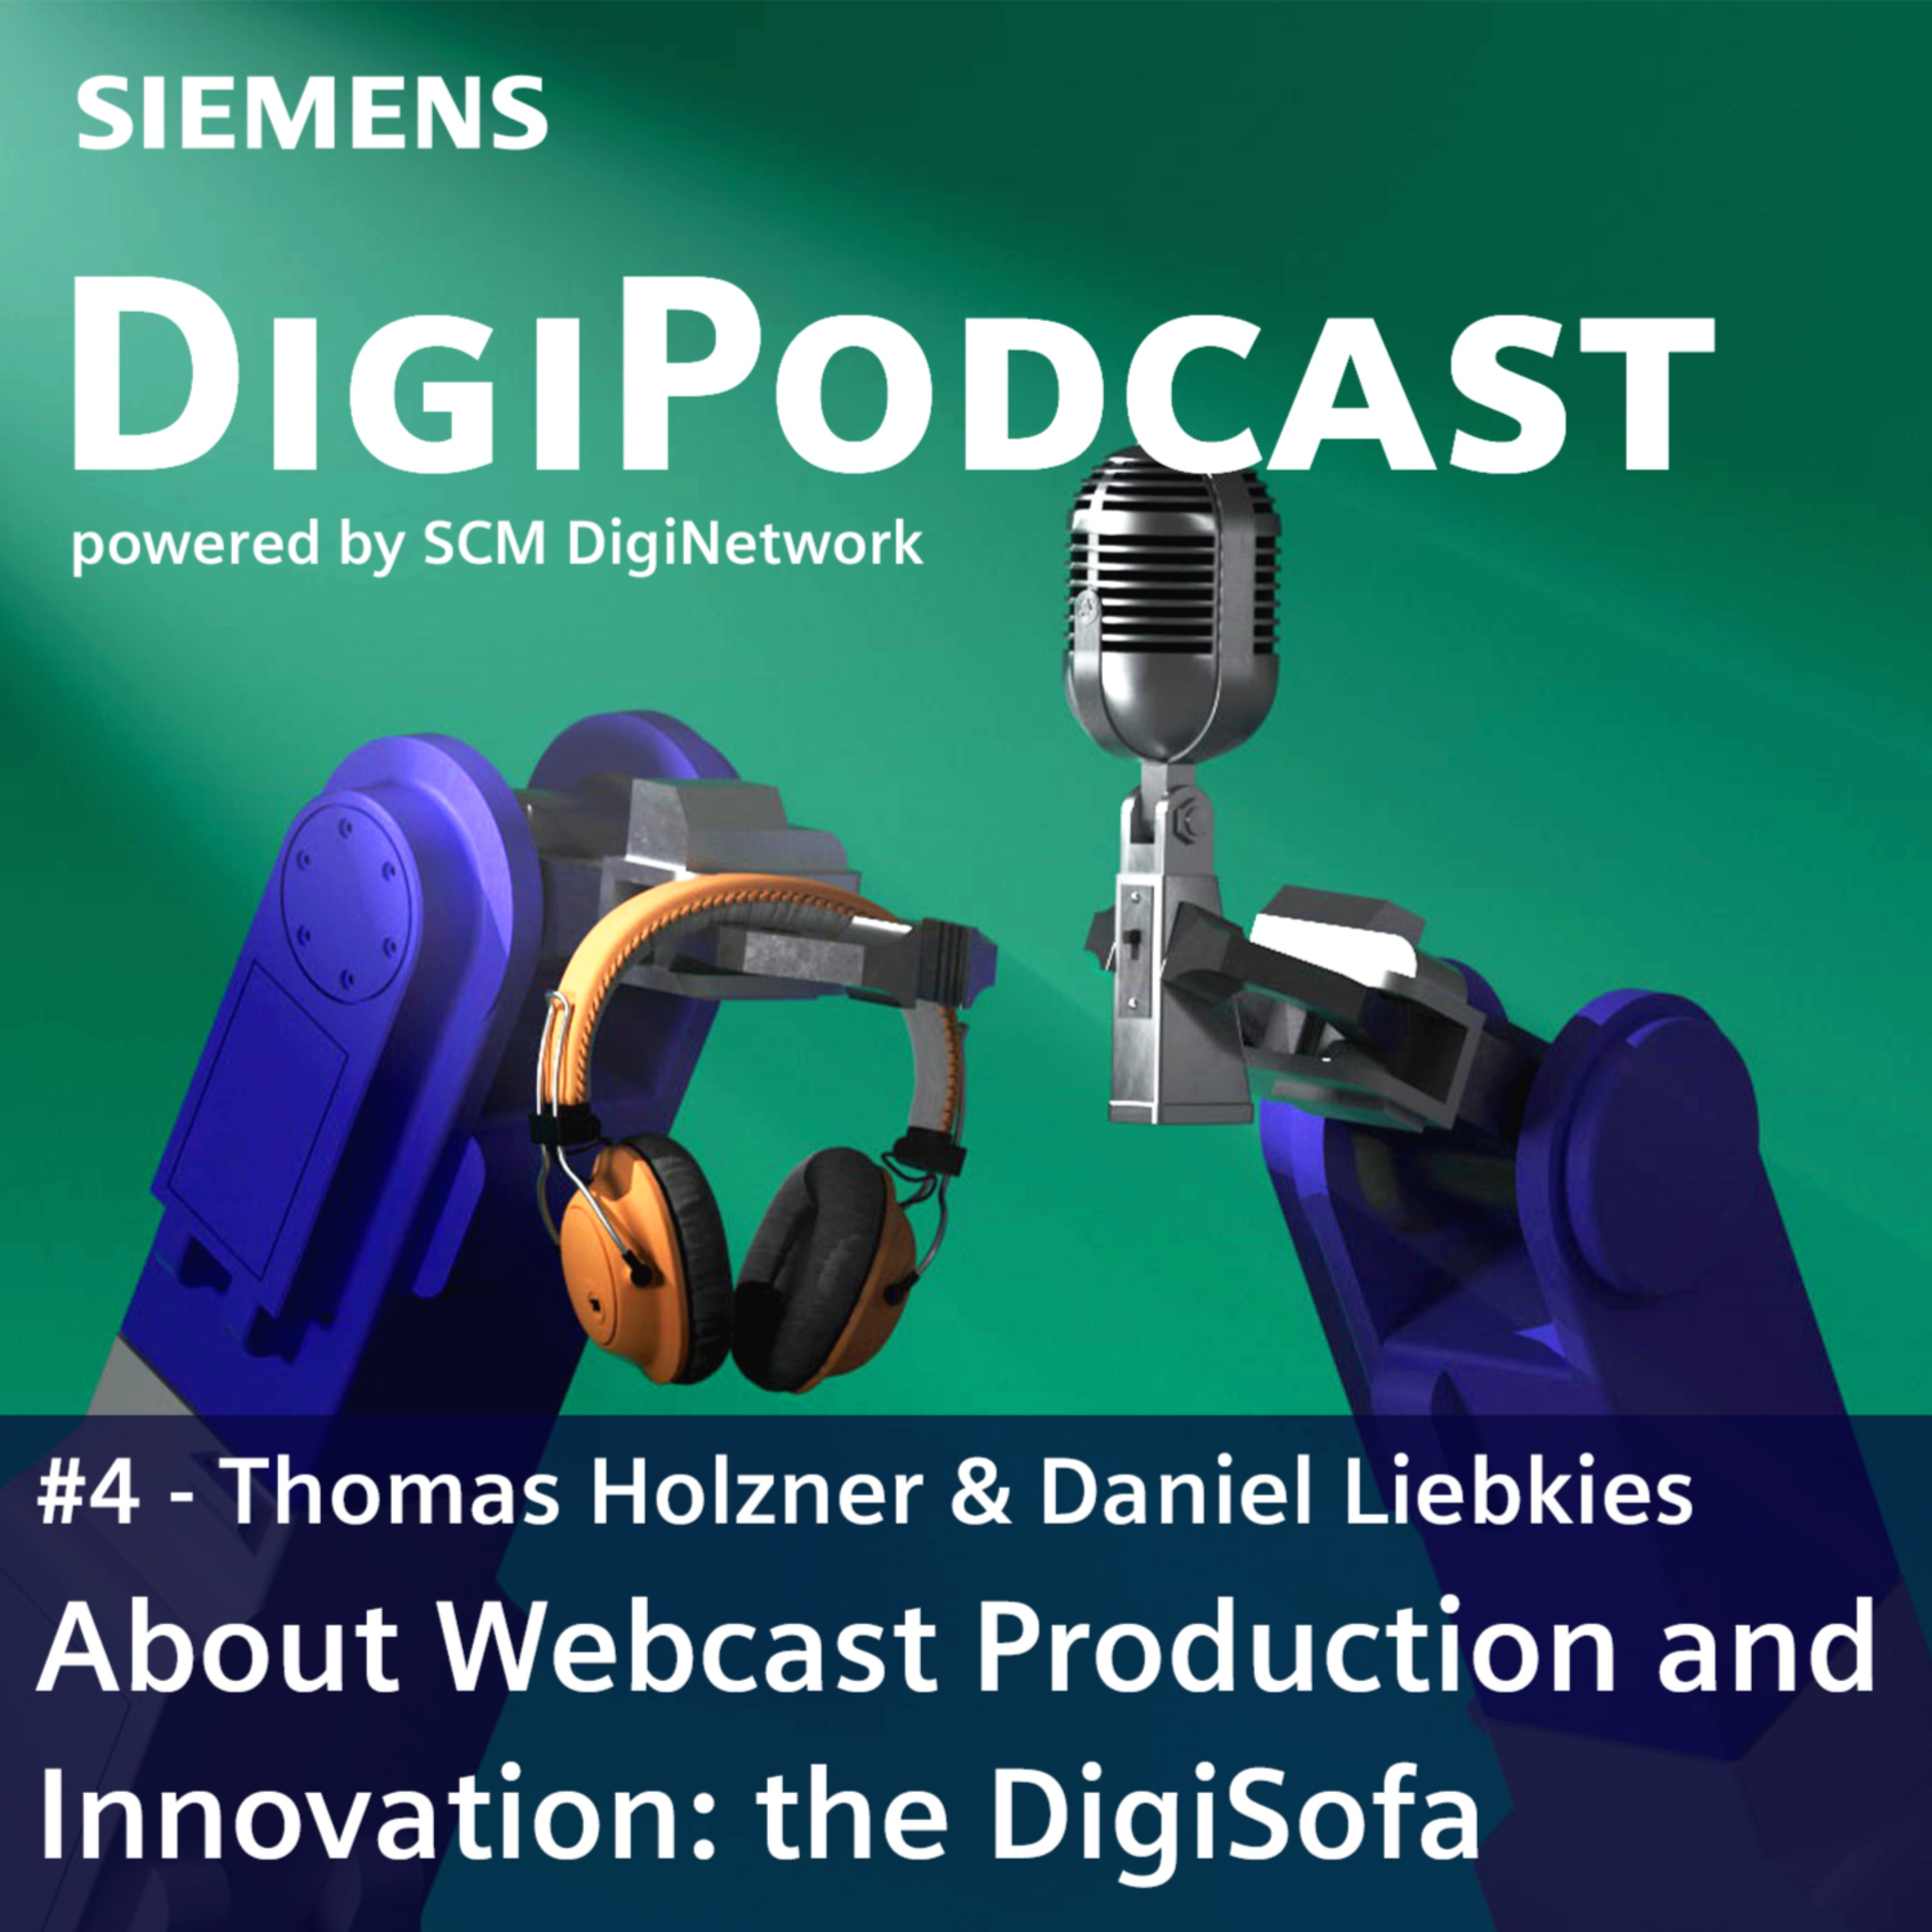 About Webcast Production and Innovation: the DigiSofa